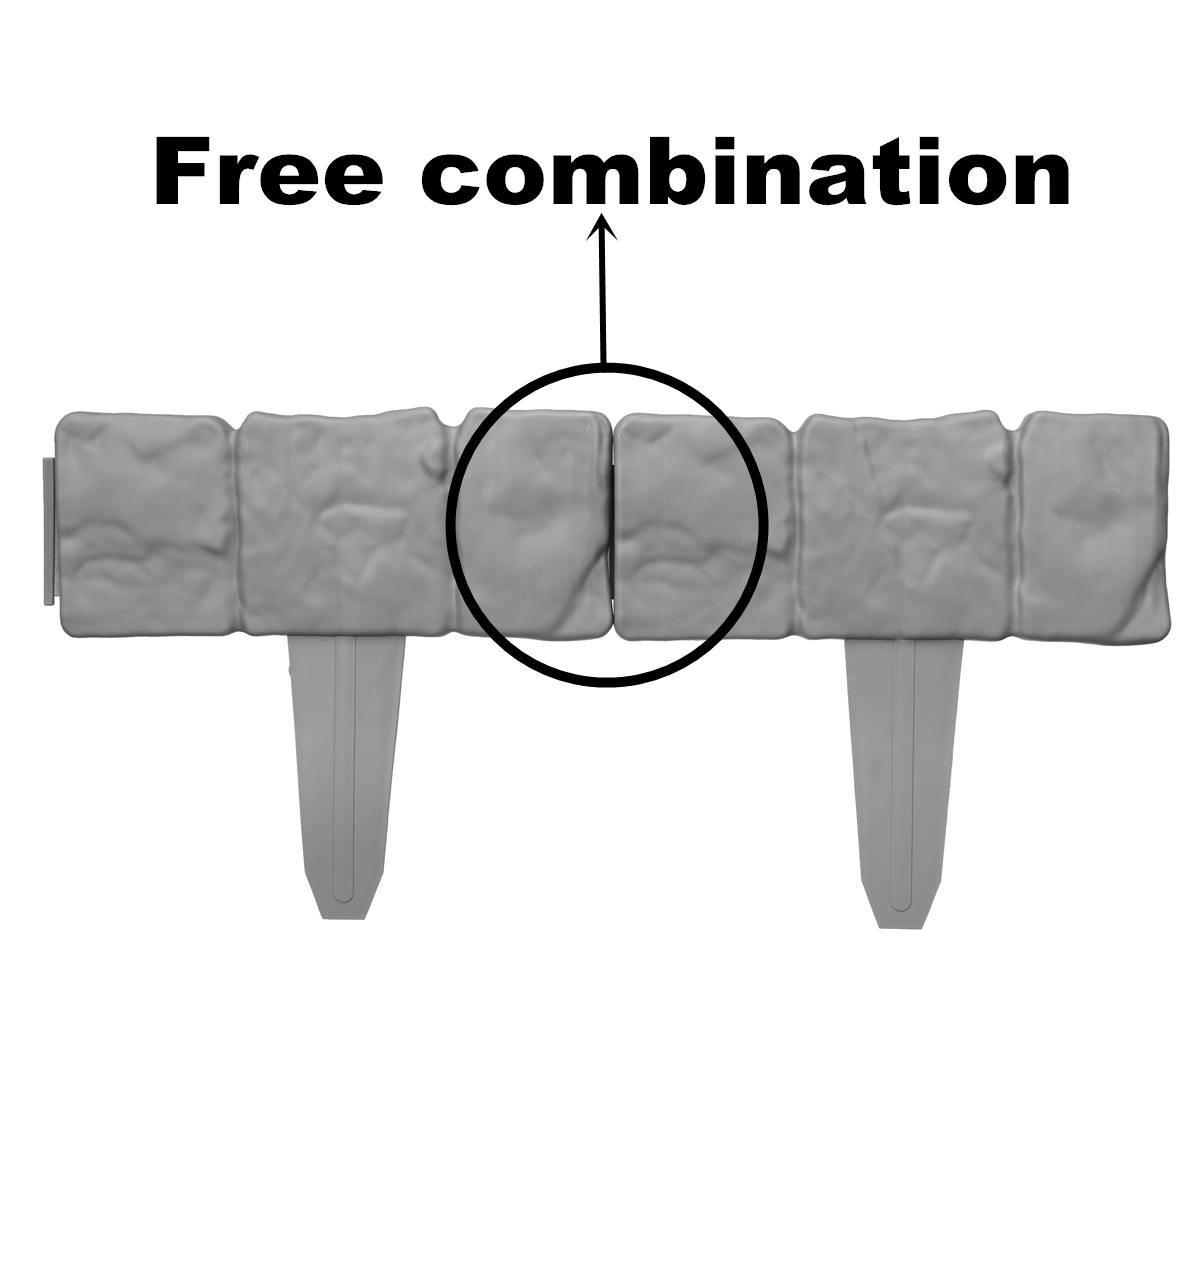 20PCS Imitation Stone Fence Gardening Grounding Fence Folding Garden Fence Borde